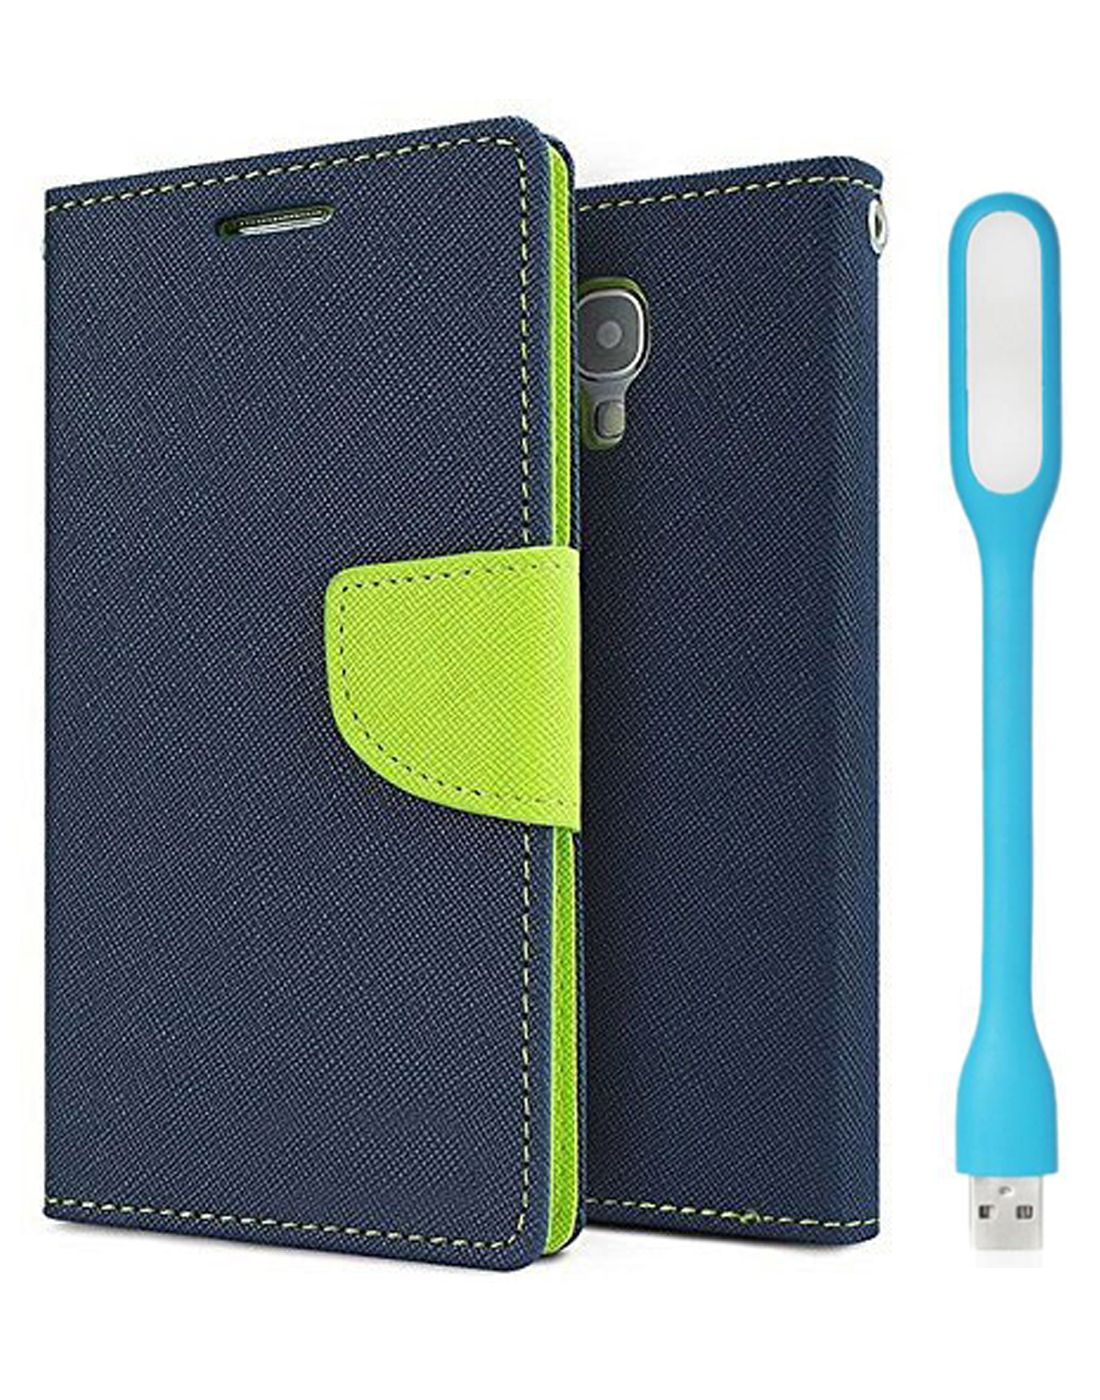 Wallet Flip Case Back Cover For Micromax A120 - (Blue) + Flexible Mini LED Stick Lamp Light By Style Crome